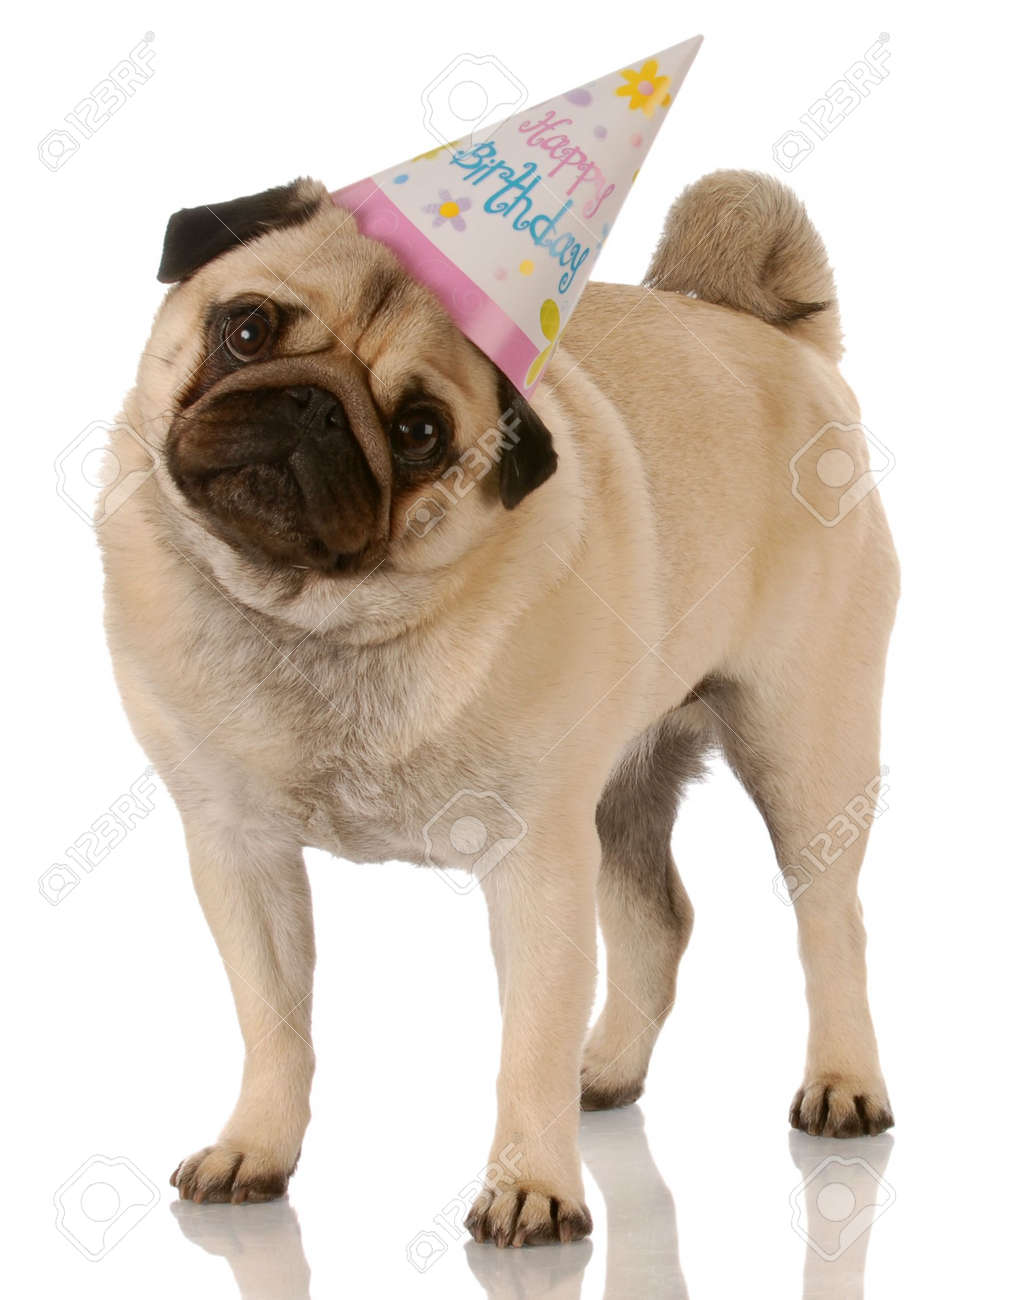 Pug Standing Wearing Birthday Hat On White Background Stock Photo